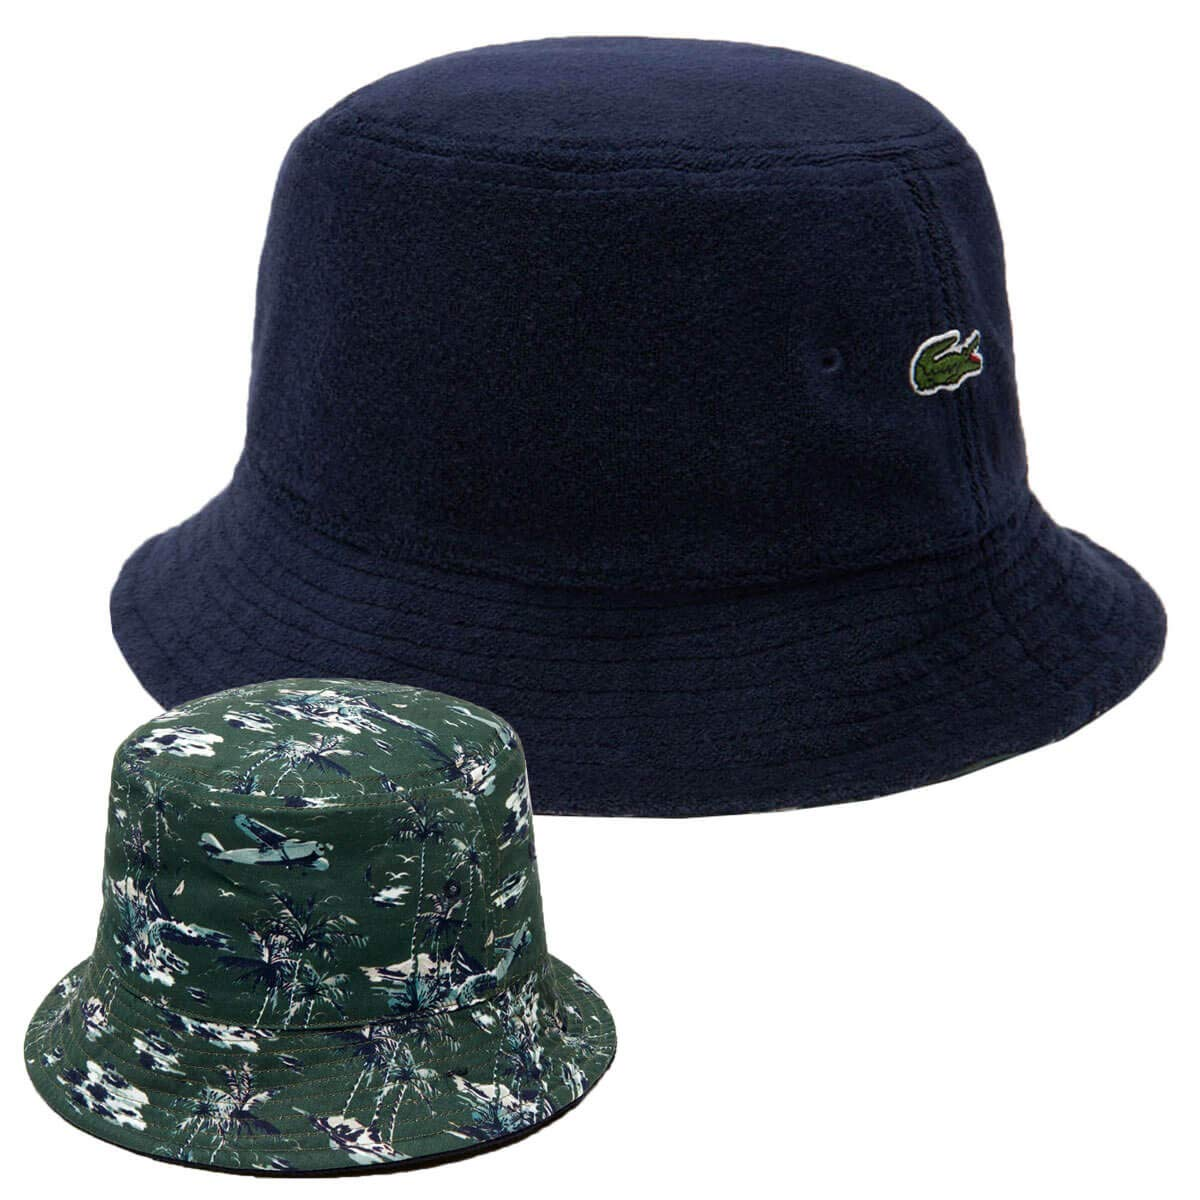 Navy Blue Terrycloth Floppy Style Bucket Sun Hat Hats